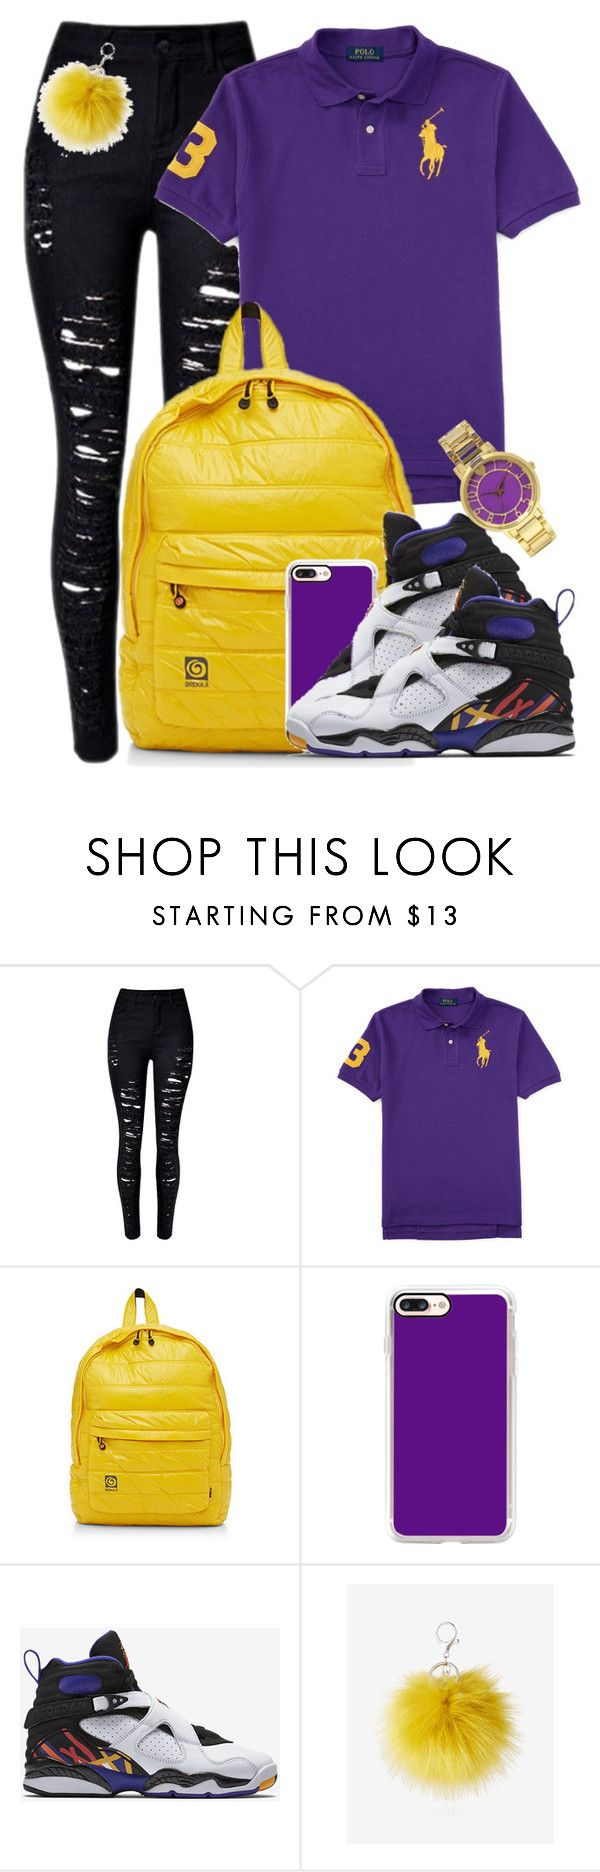 """Dope Swag 2016"" by bxby-girl-rielle ❤ liked on Polyvore featuring Casetify, NIKE and Express"